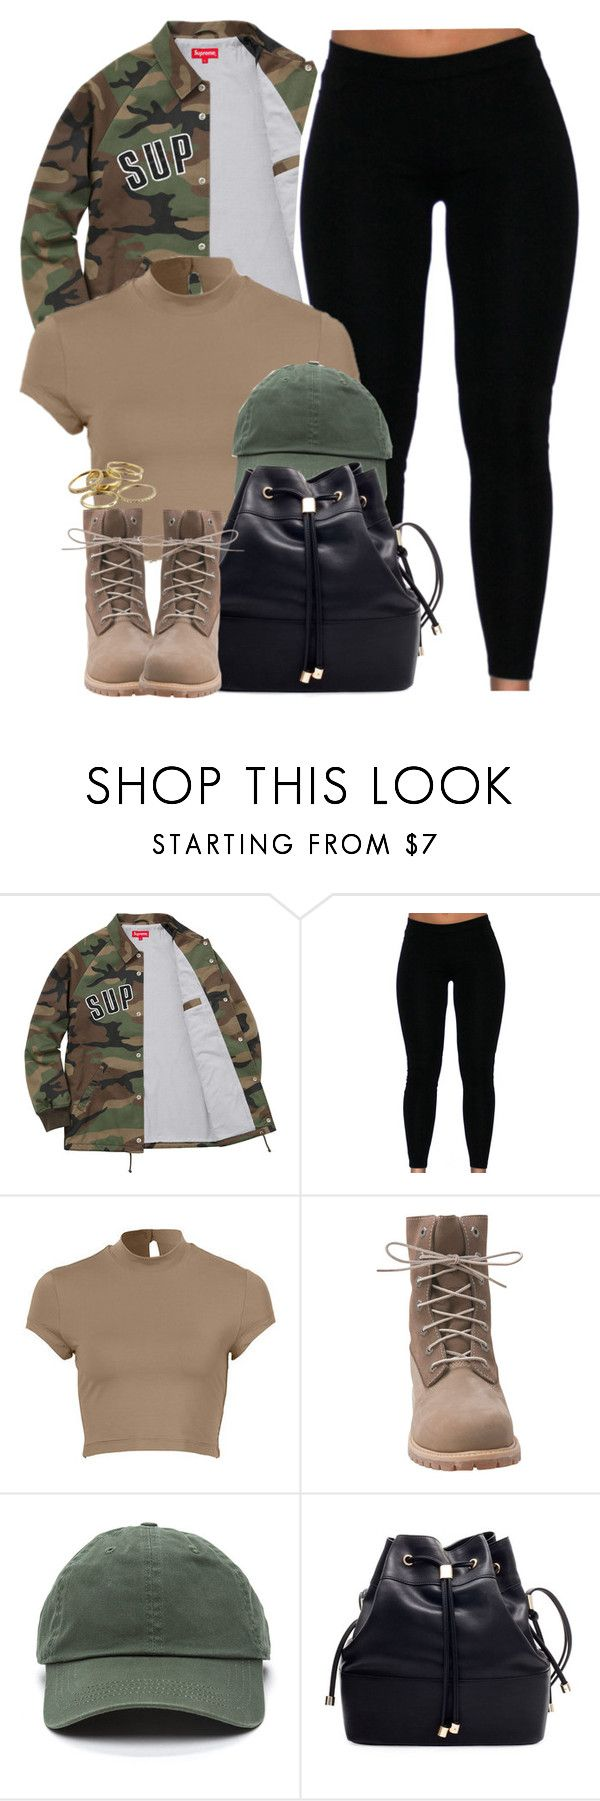 """""""Supreme being ."""" by cheerstostyle ❤ liked on Polyvore featuring Timberland and Kendra Scott"""